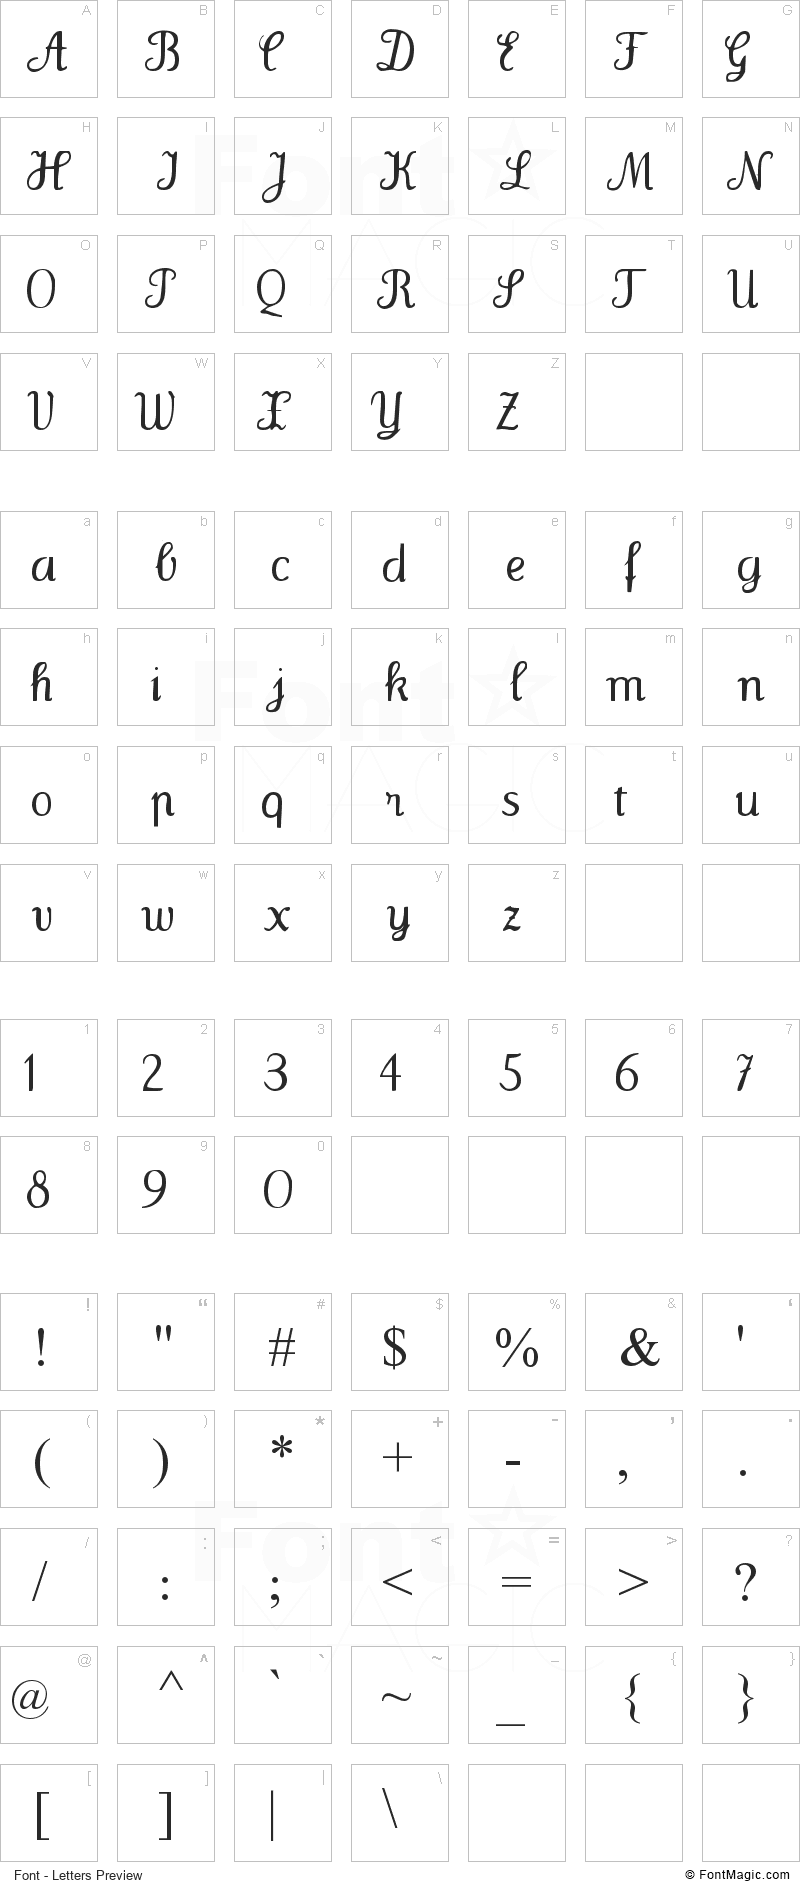 Wenceslas Font - All Latters Preview Chart